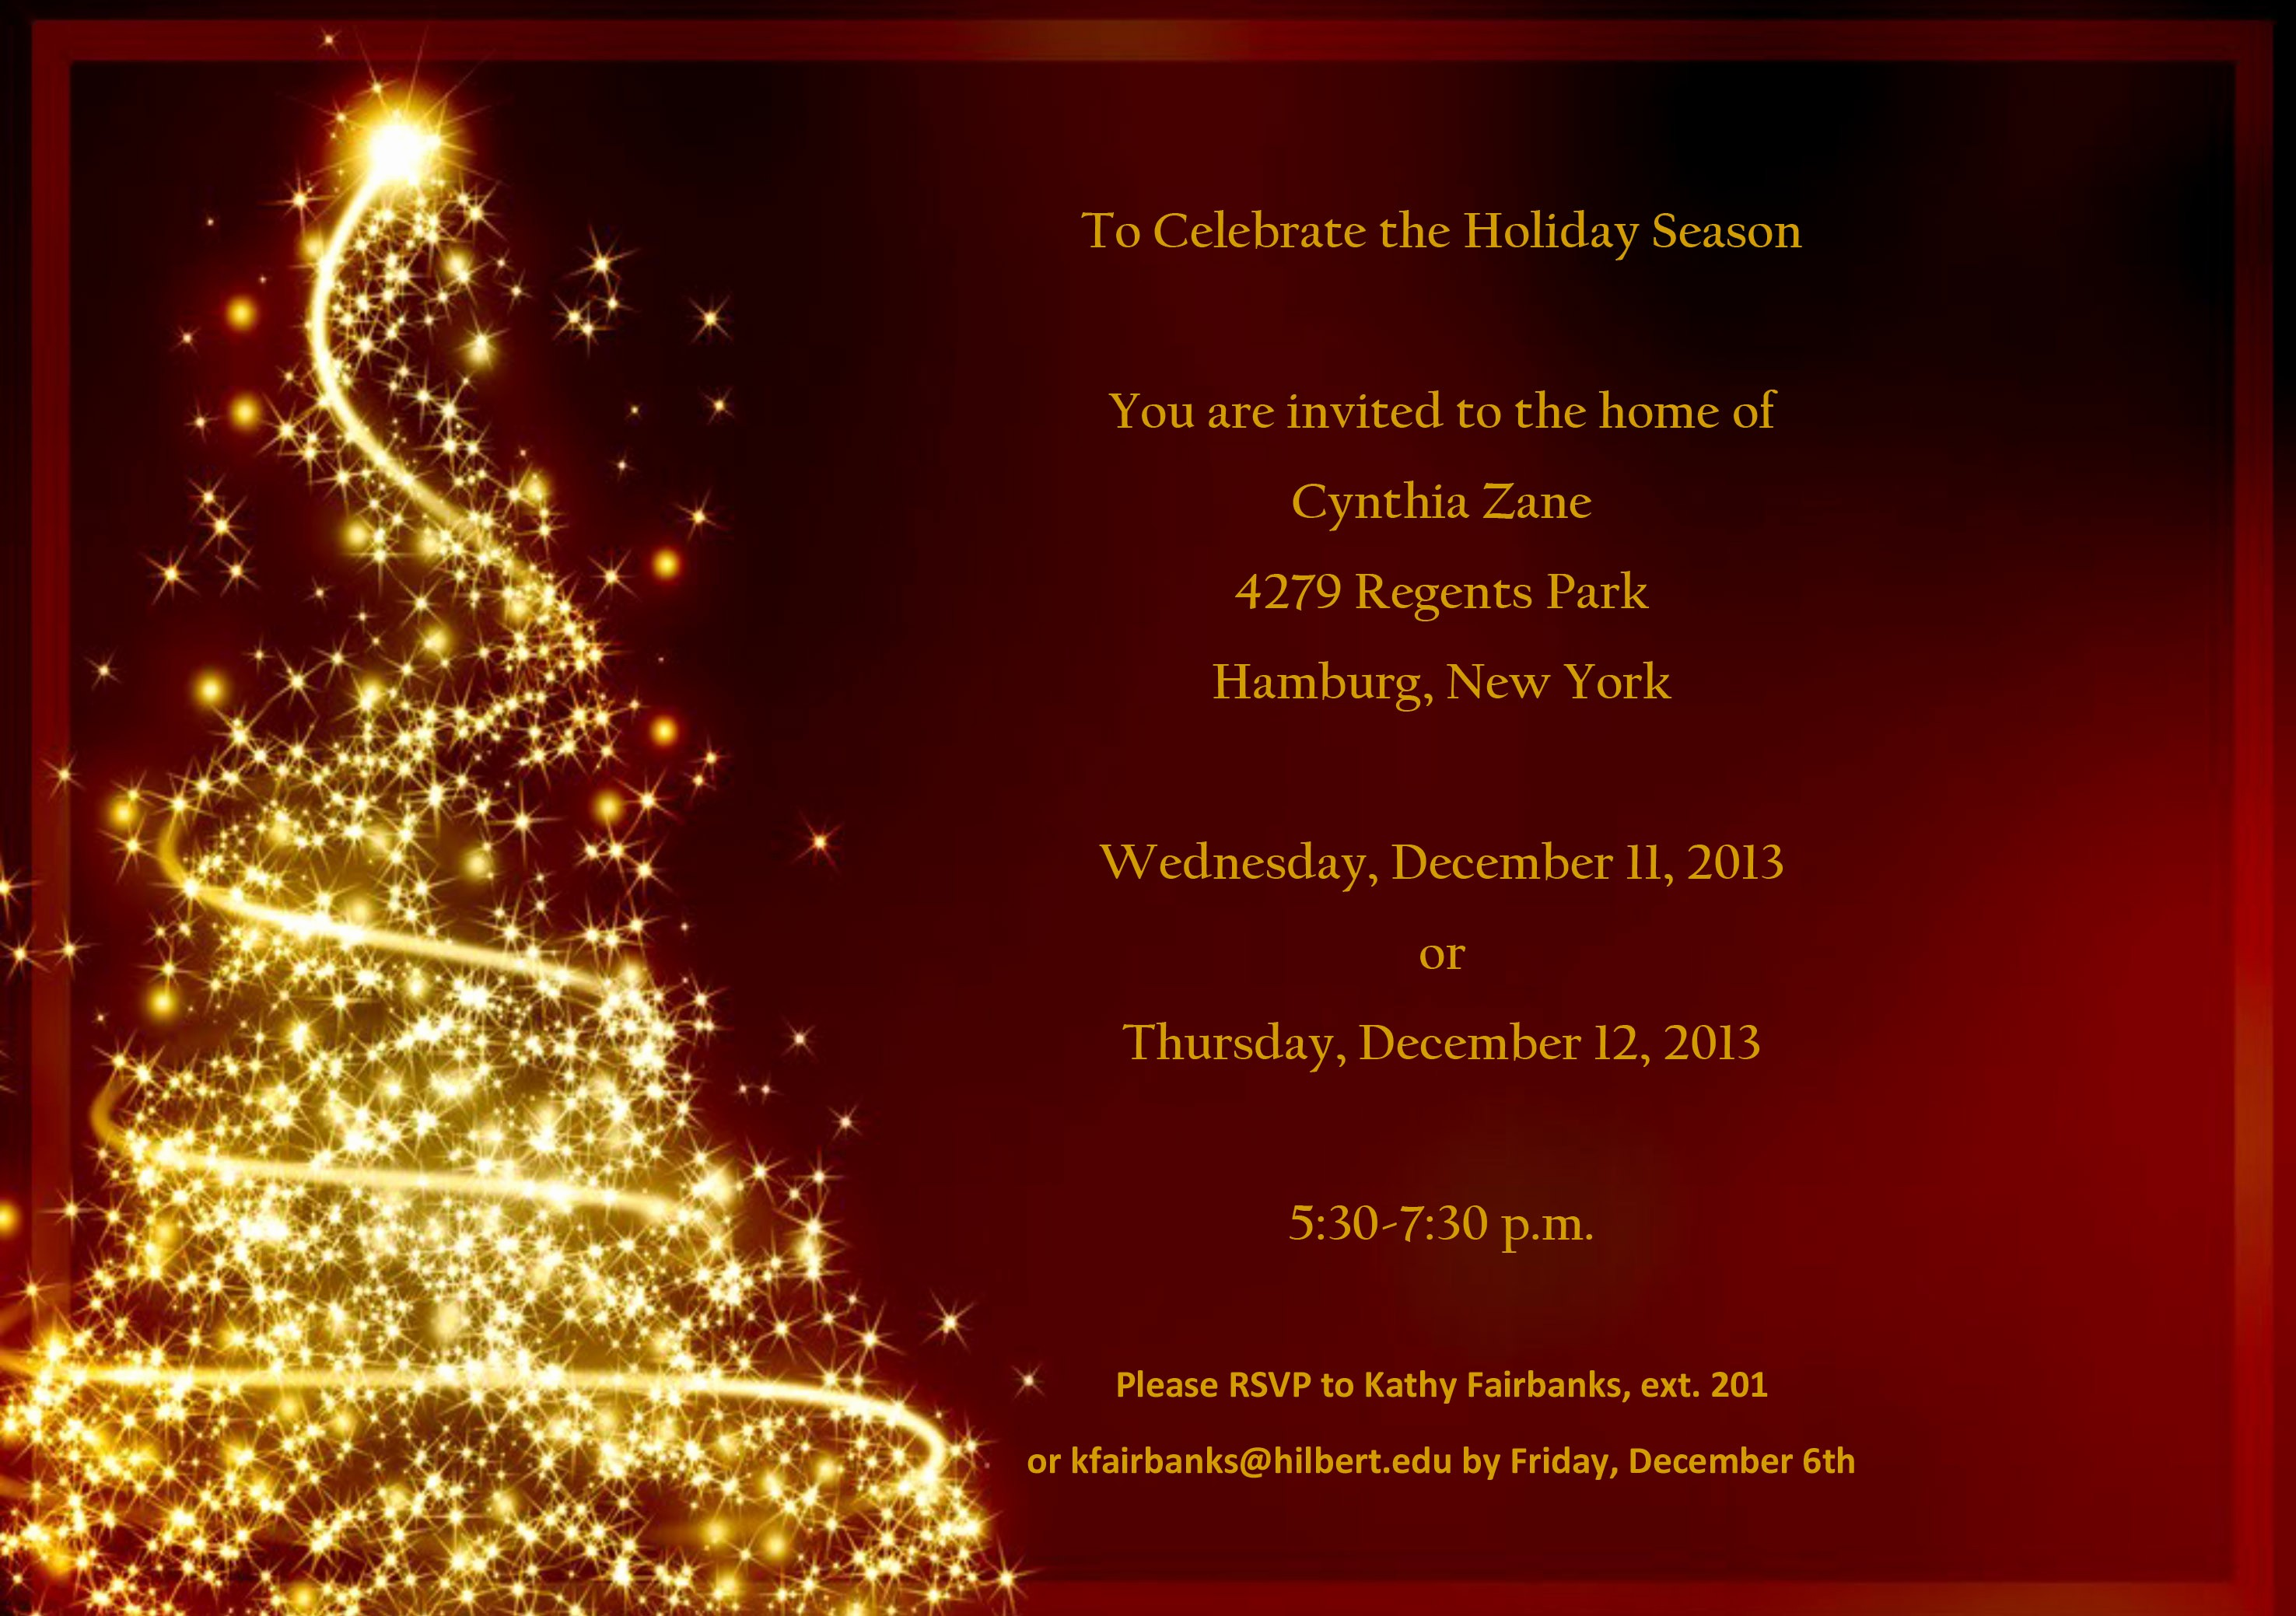 Christmas Party Invite Free Template Best Of Christmas Party Invitation Templates Free Download